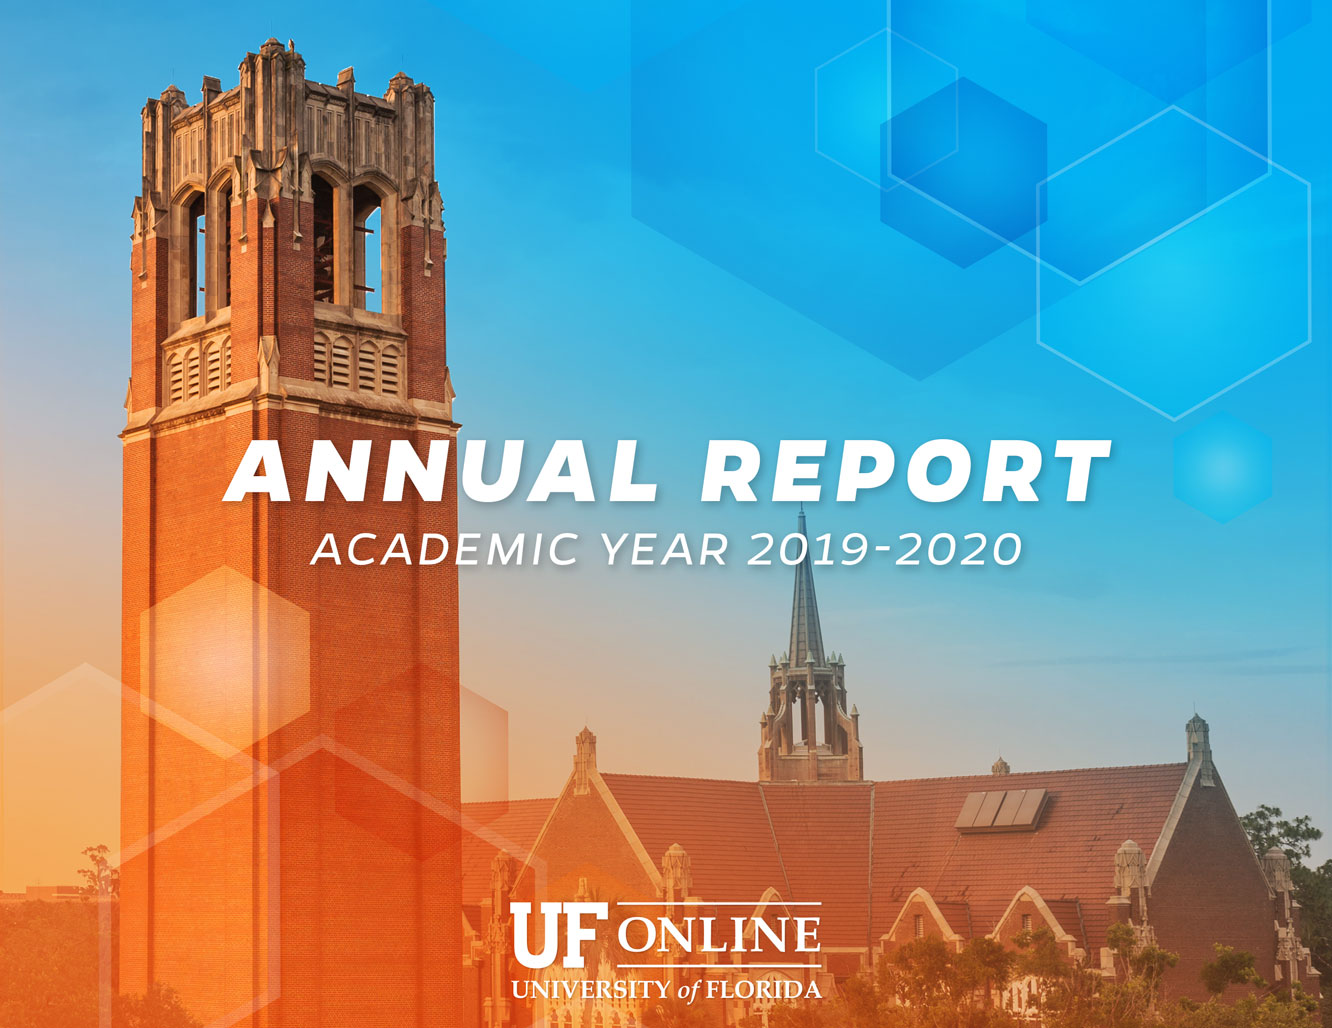 UF Online Cover of the UFO 2019-2020 Annual Report